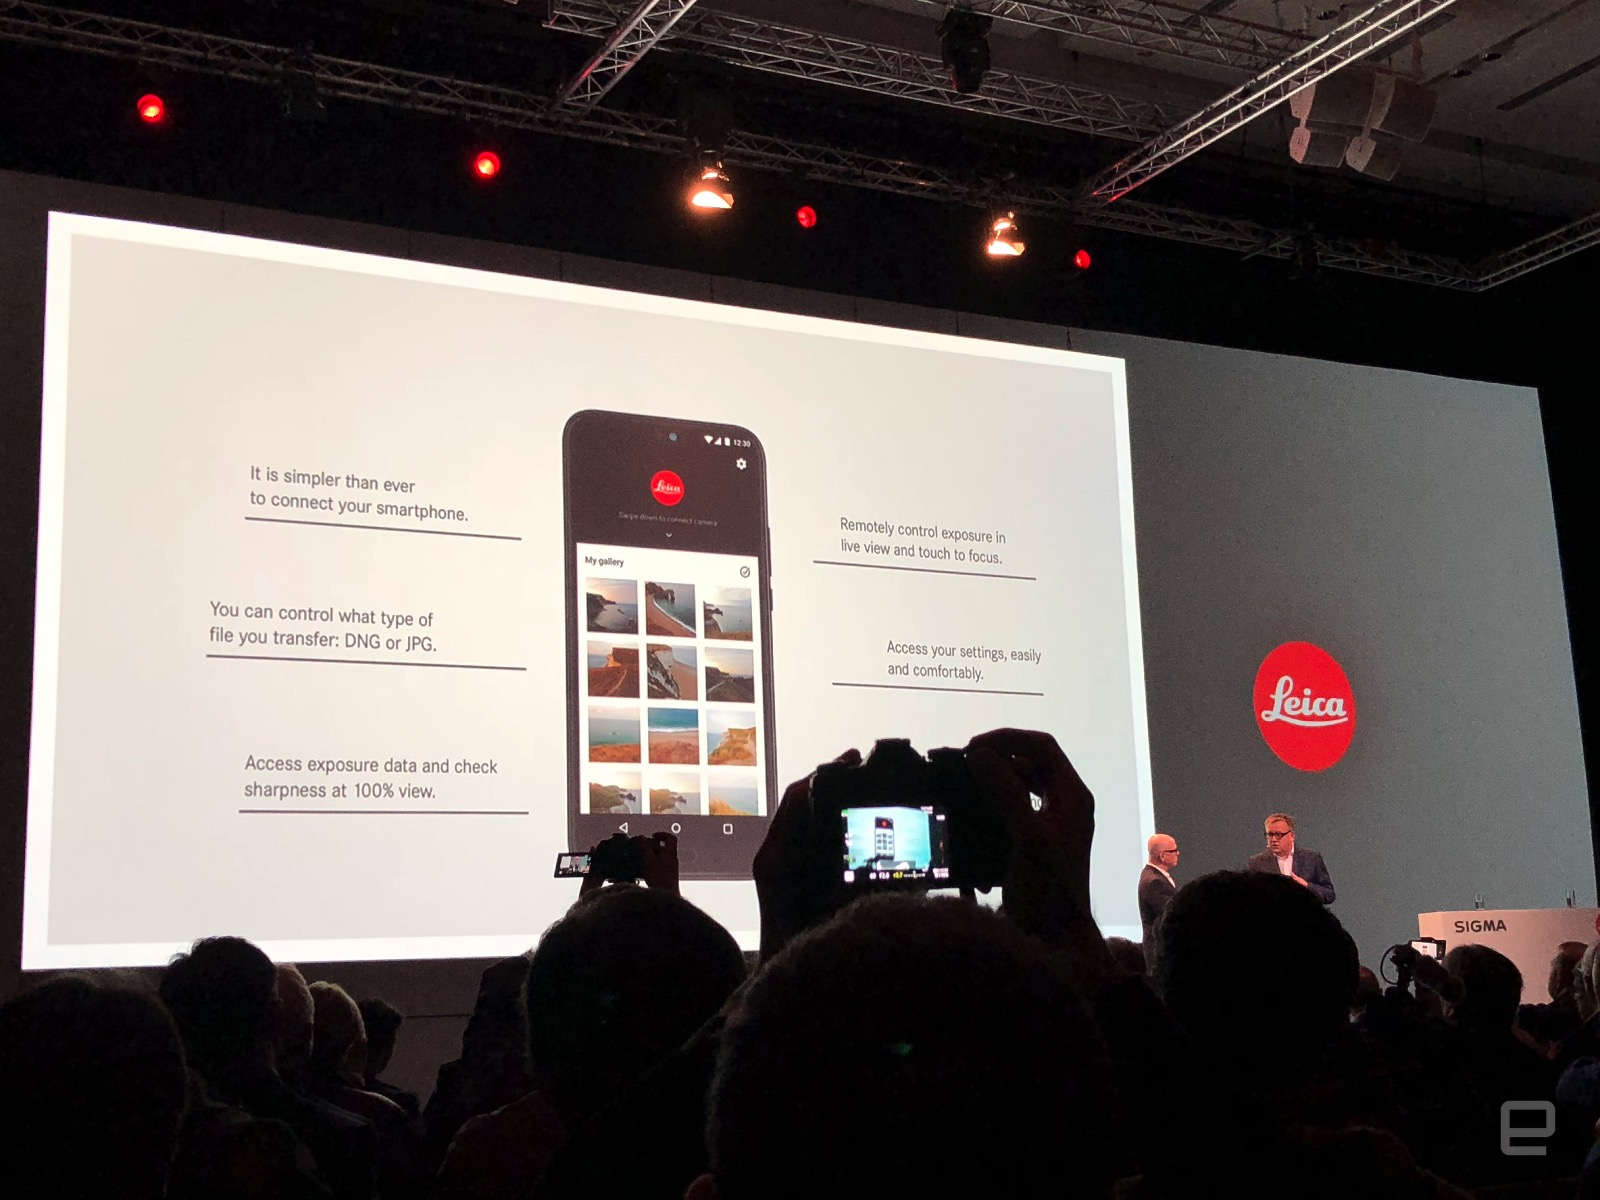 Leica's new app lets you control your camera with a smartphone